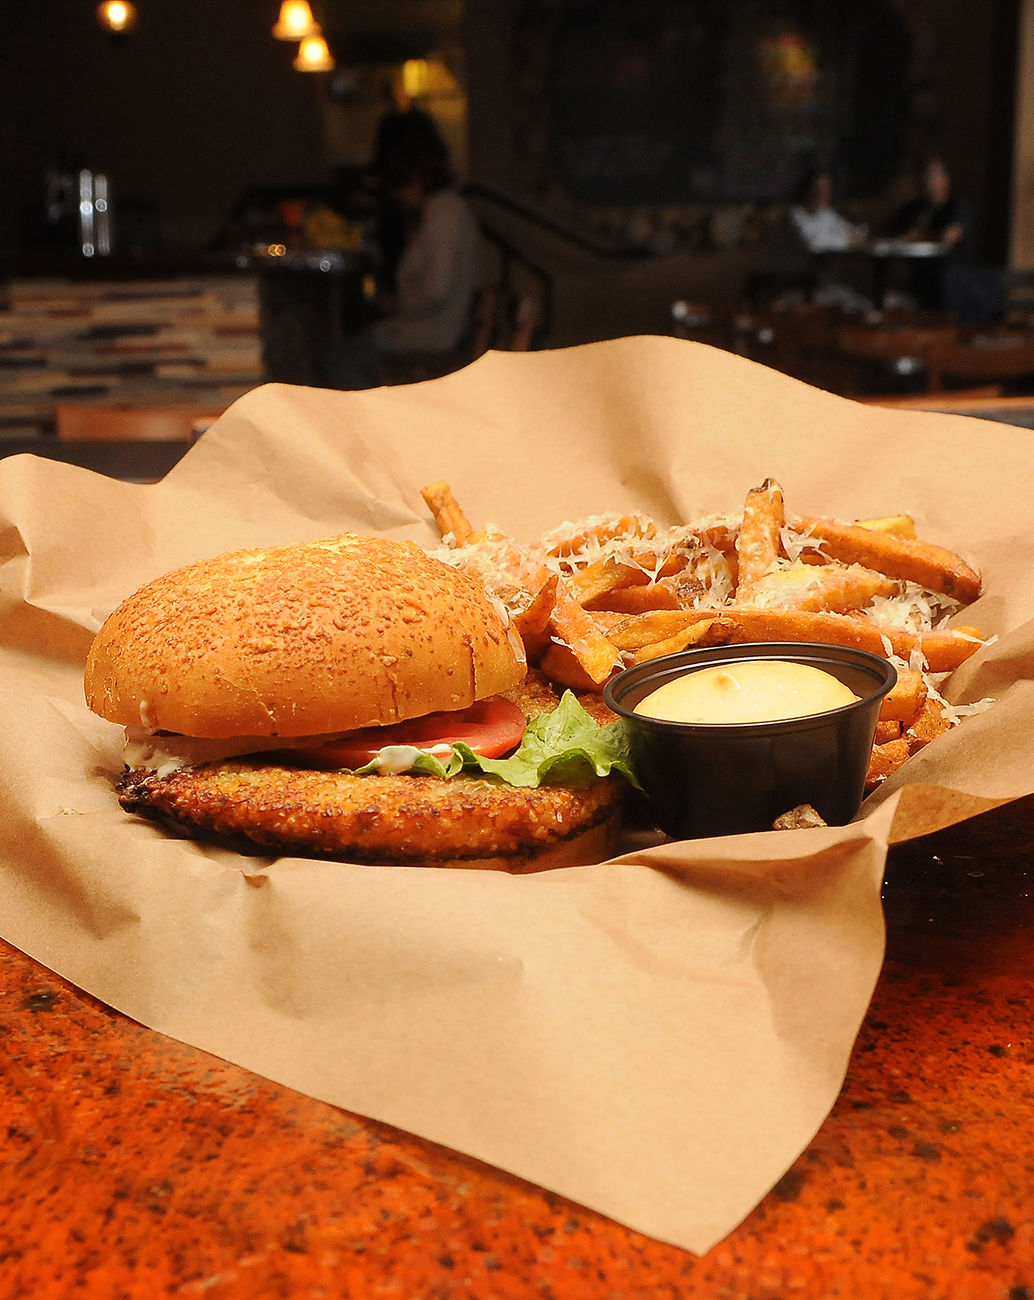 DINING REVIEW: Manitou Brewing Co. serves fare a step above a typical pub grub